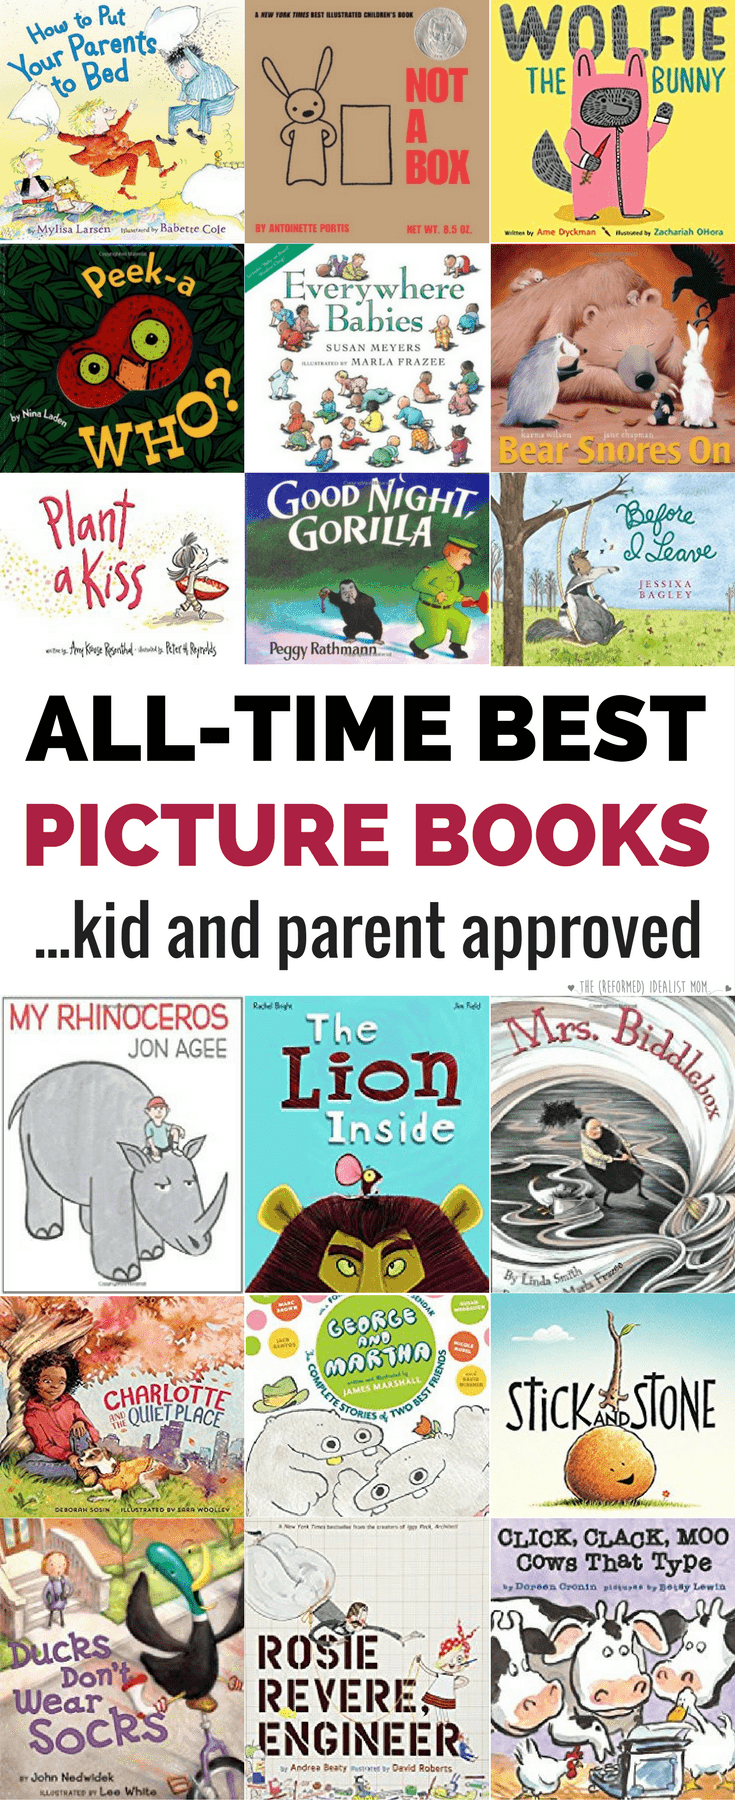 This isn't a list of the best picture books according to the